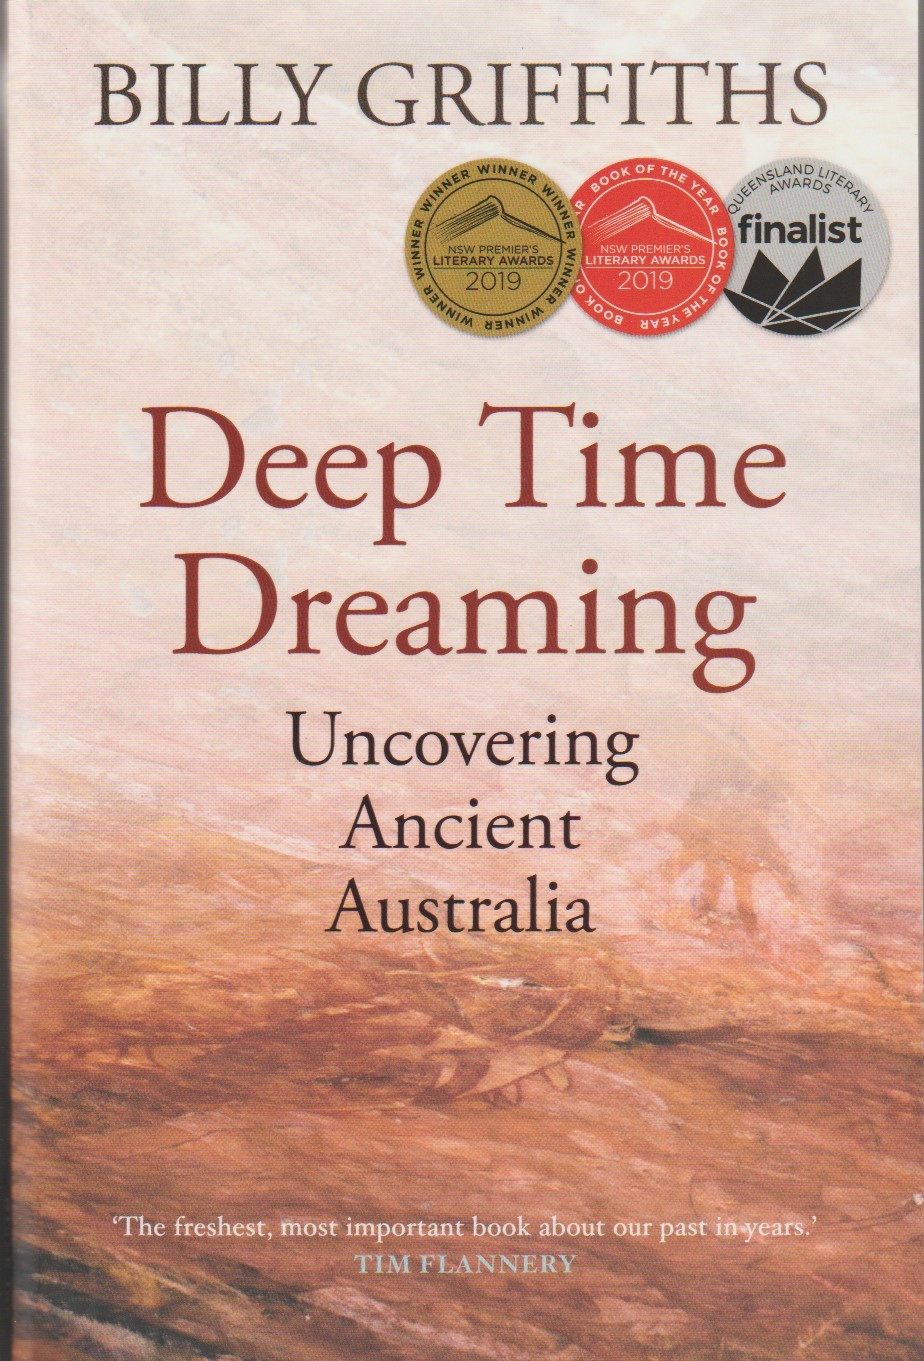 Deep Time Dreaming - Uncovering Ancient Australia